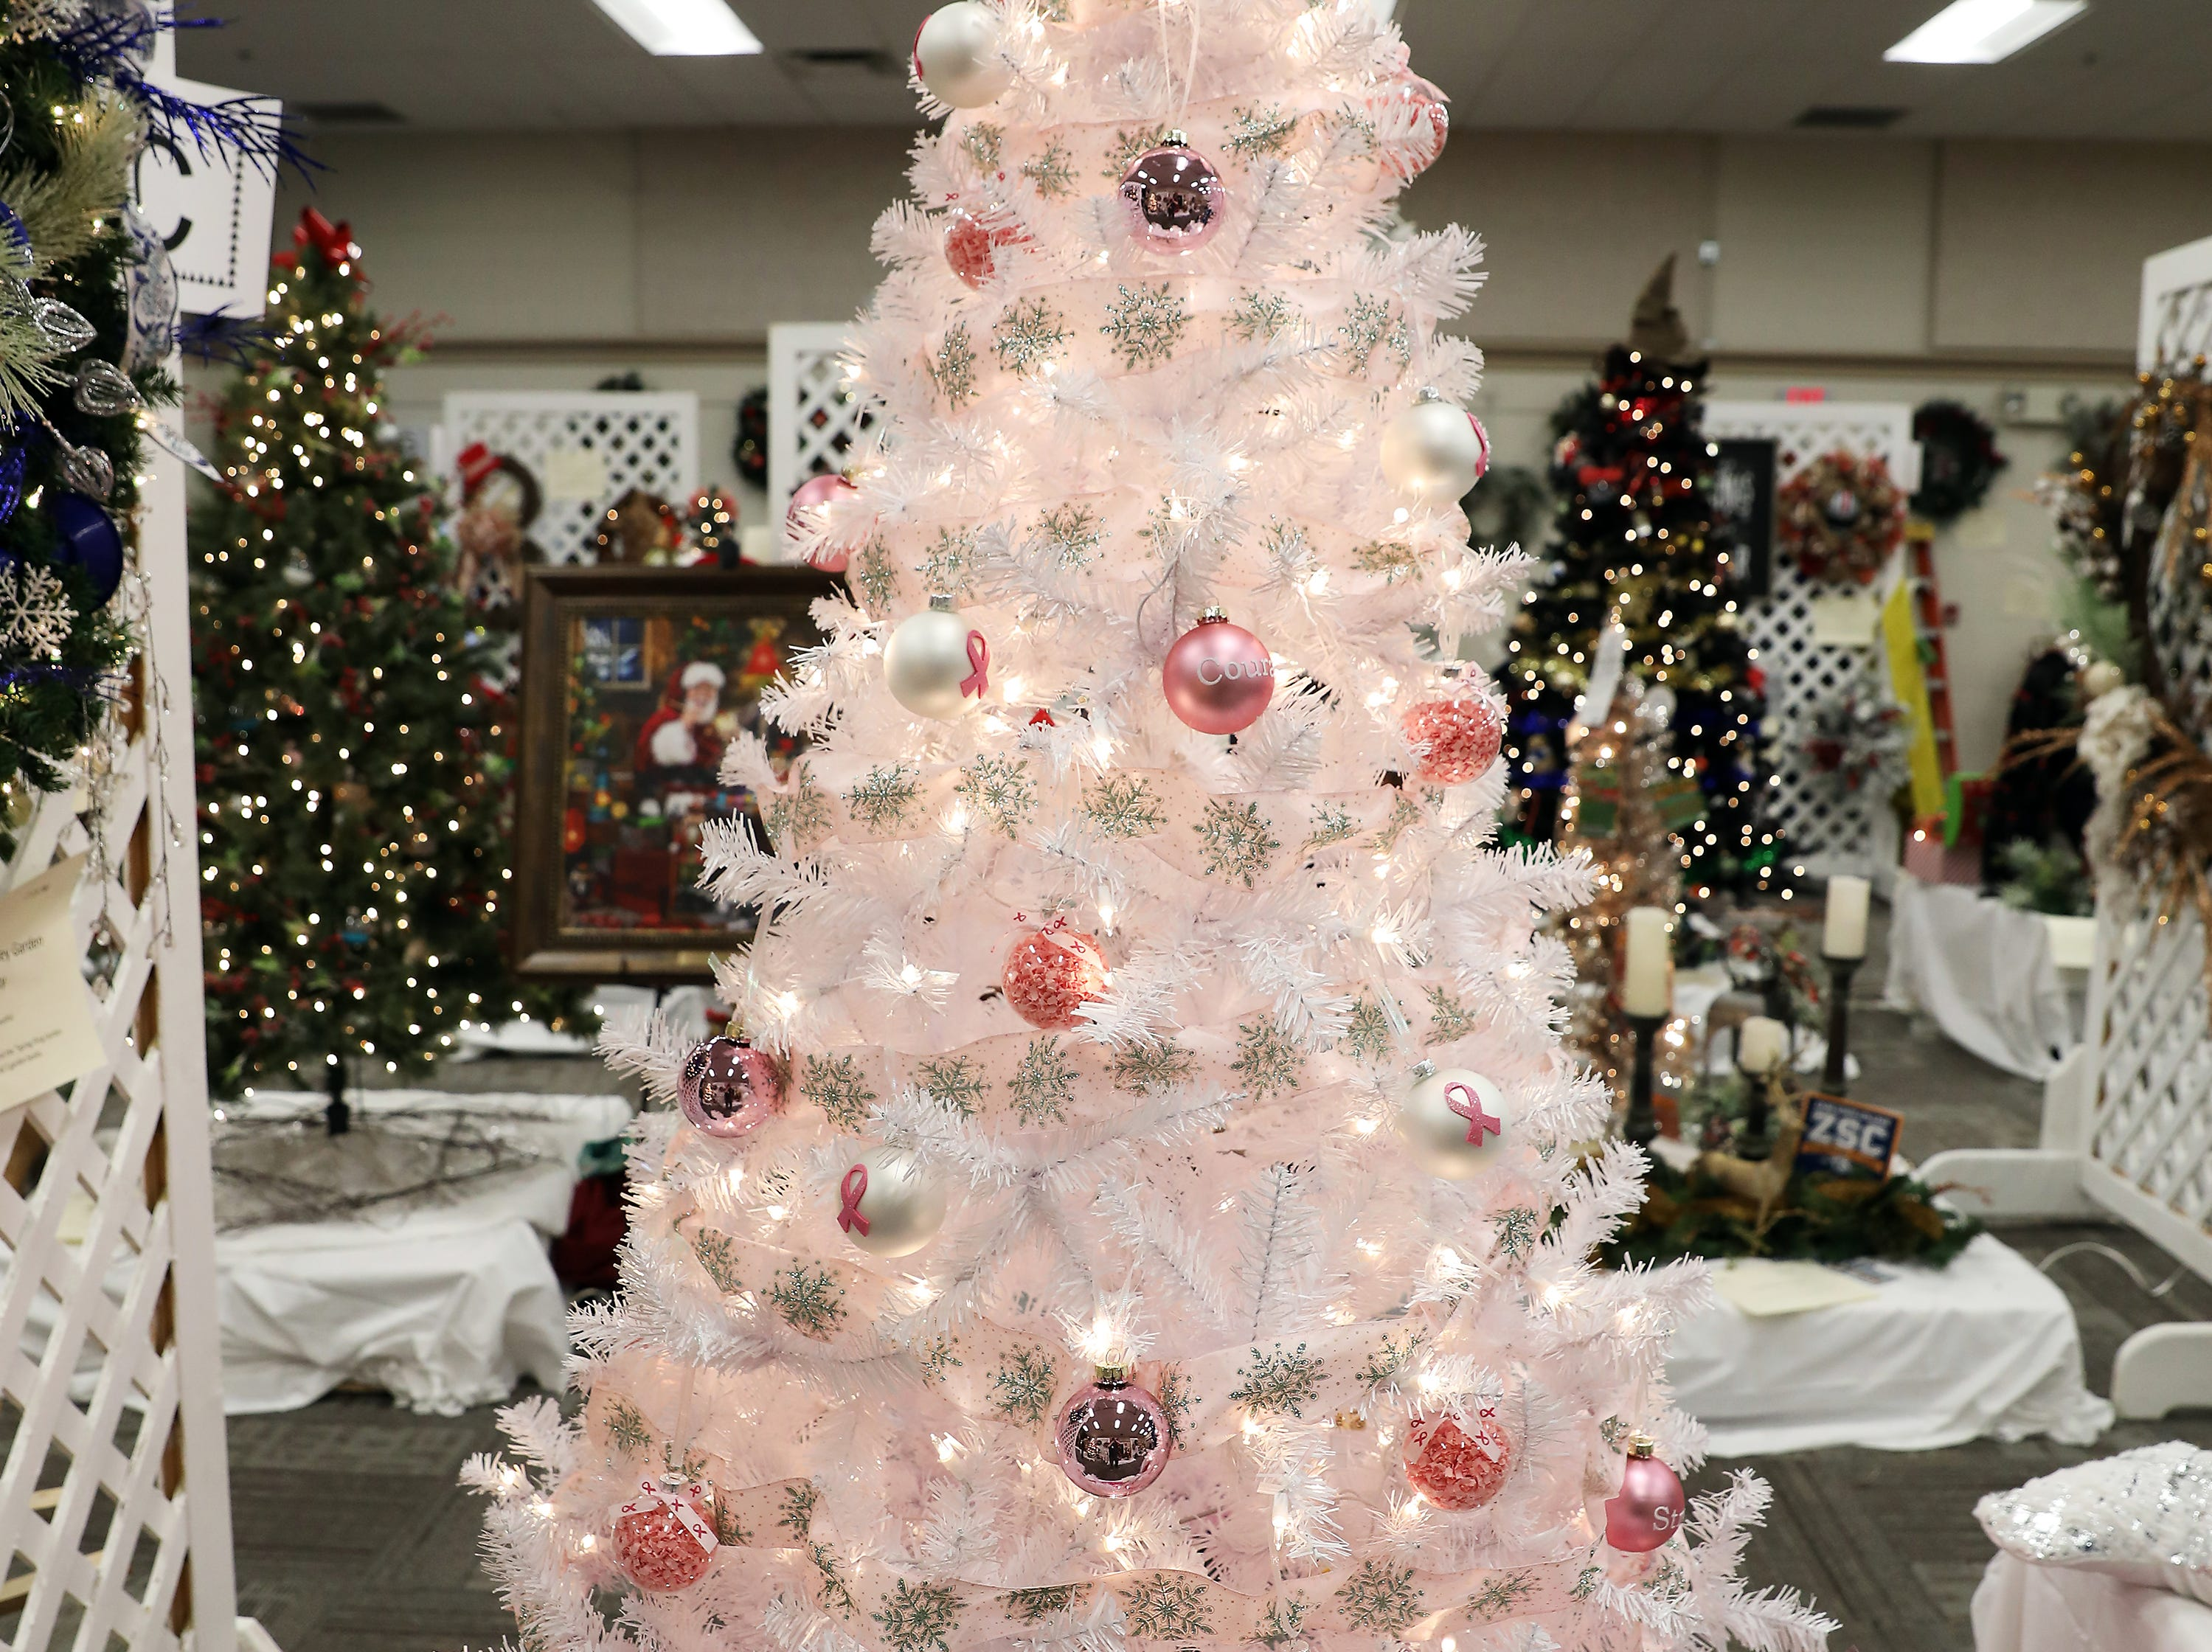 121	1:45 PM	Muskingum Community Home Health	Large Tree	Christmas	Breast cancer awareness tree		$50 gift card for Adornetto's, Giacomo's, Old Market House Inn.